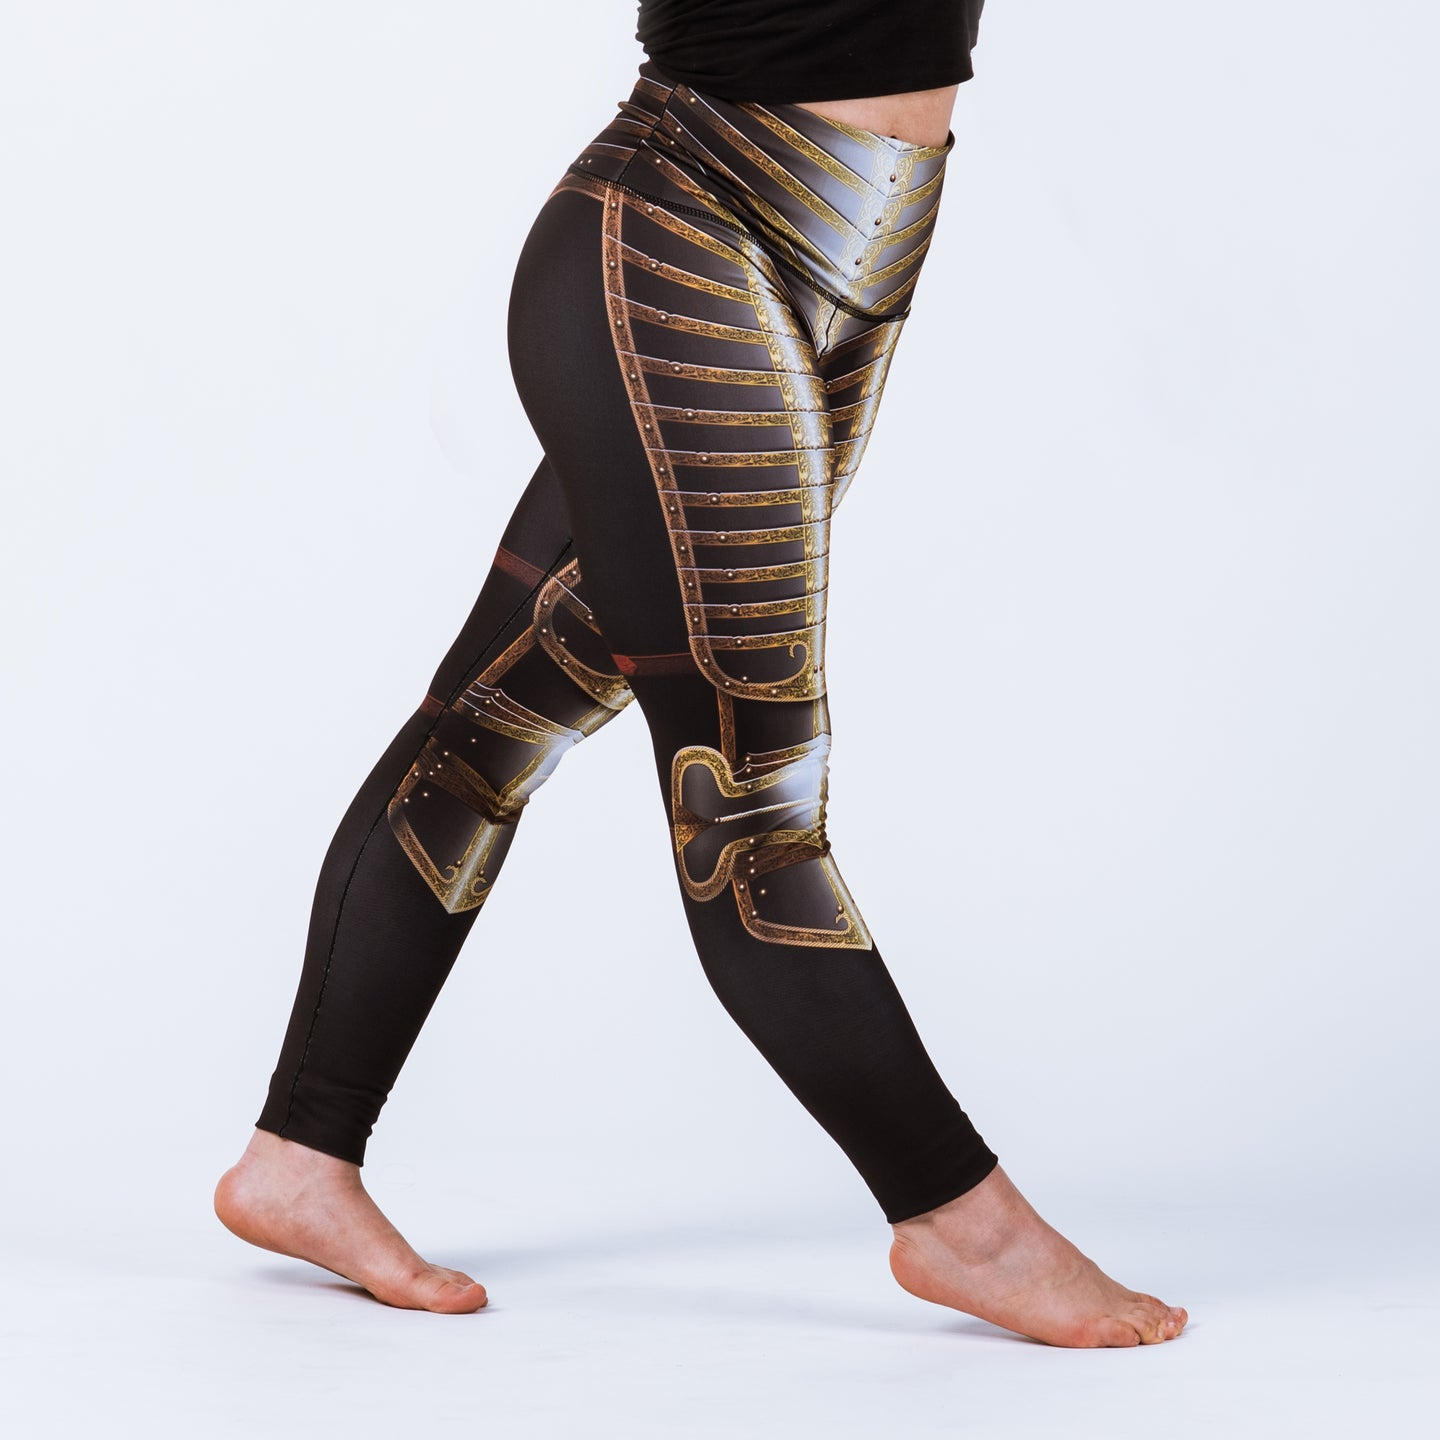 The Henry VIII Leggings